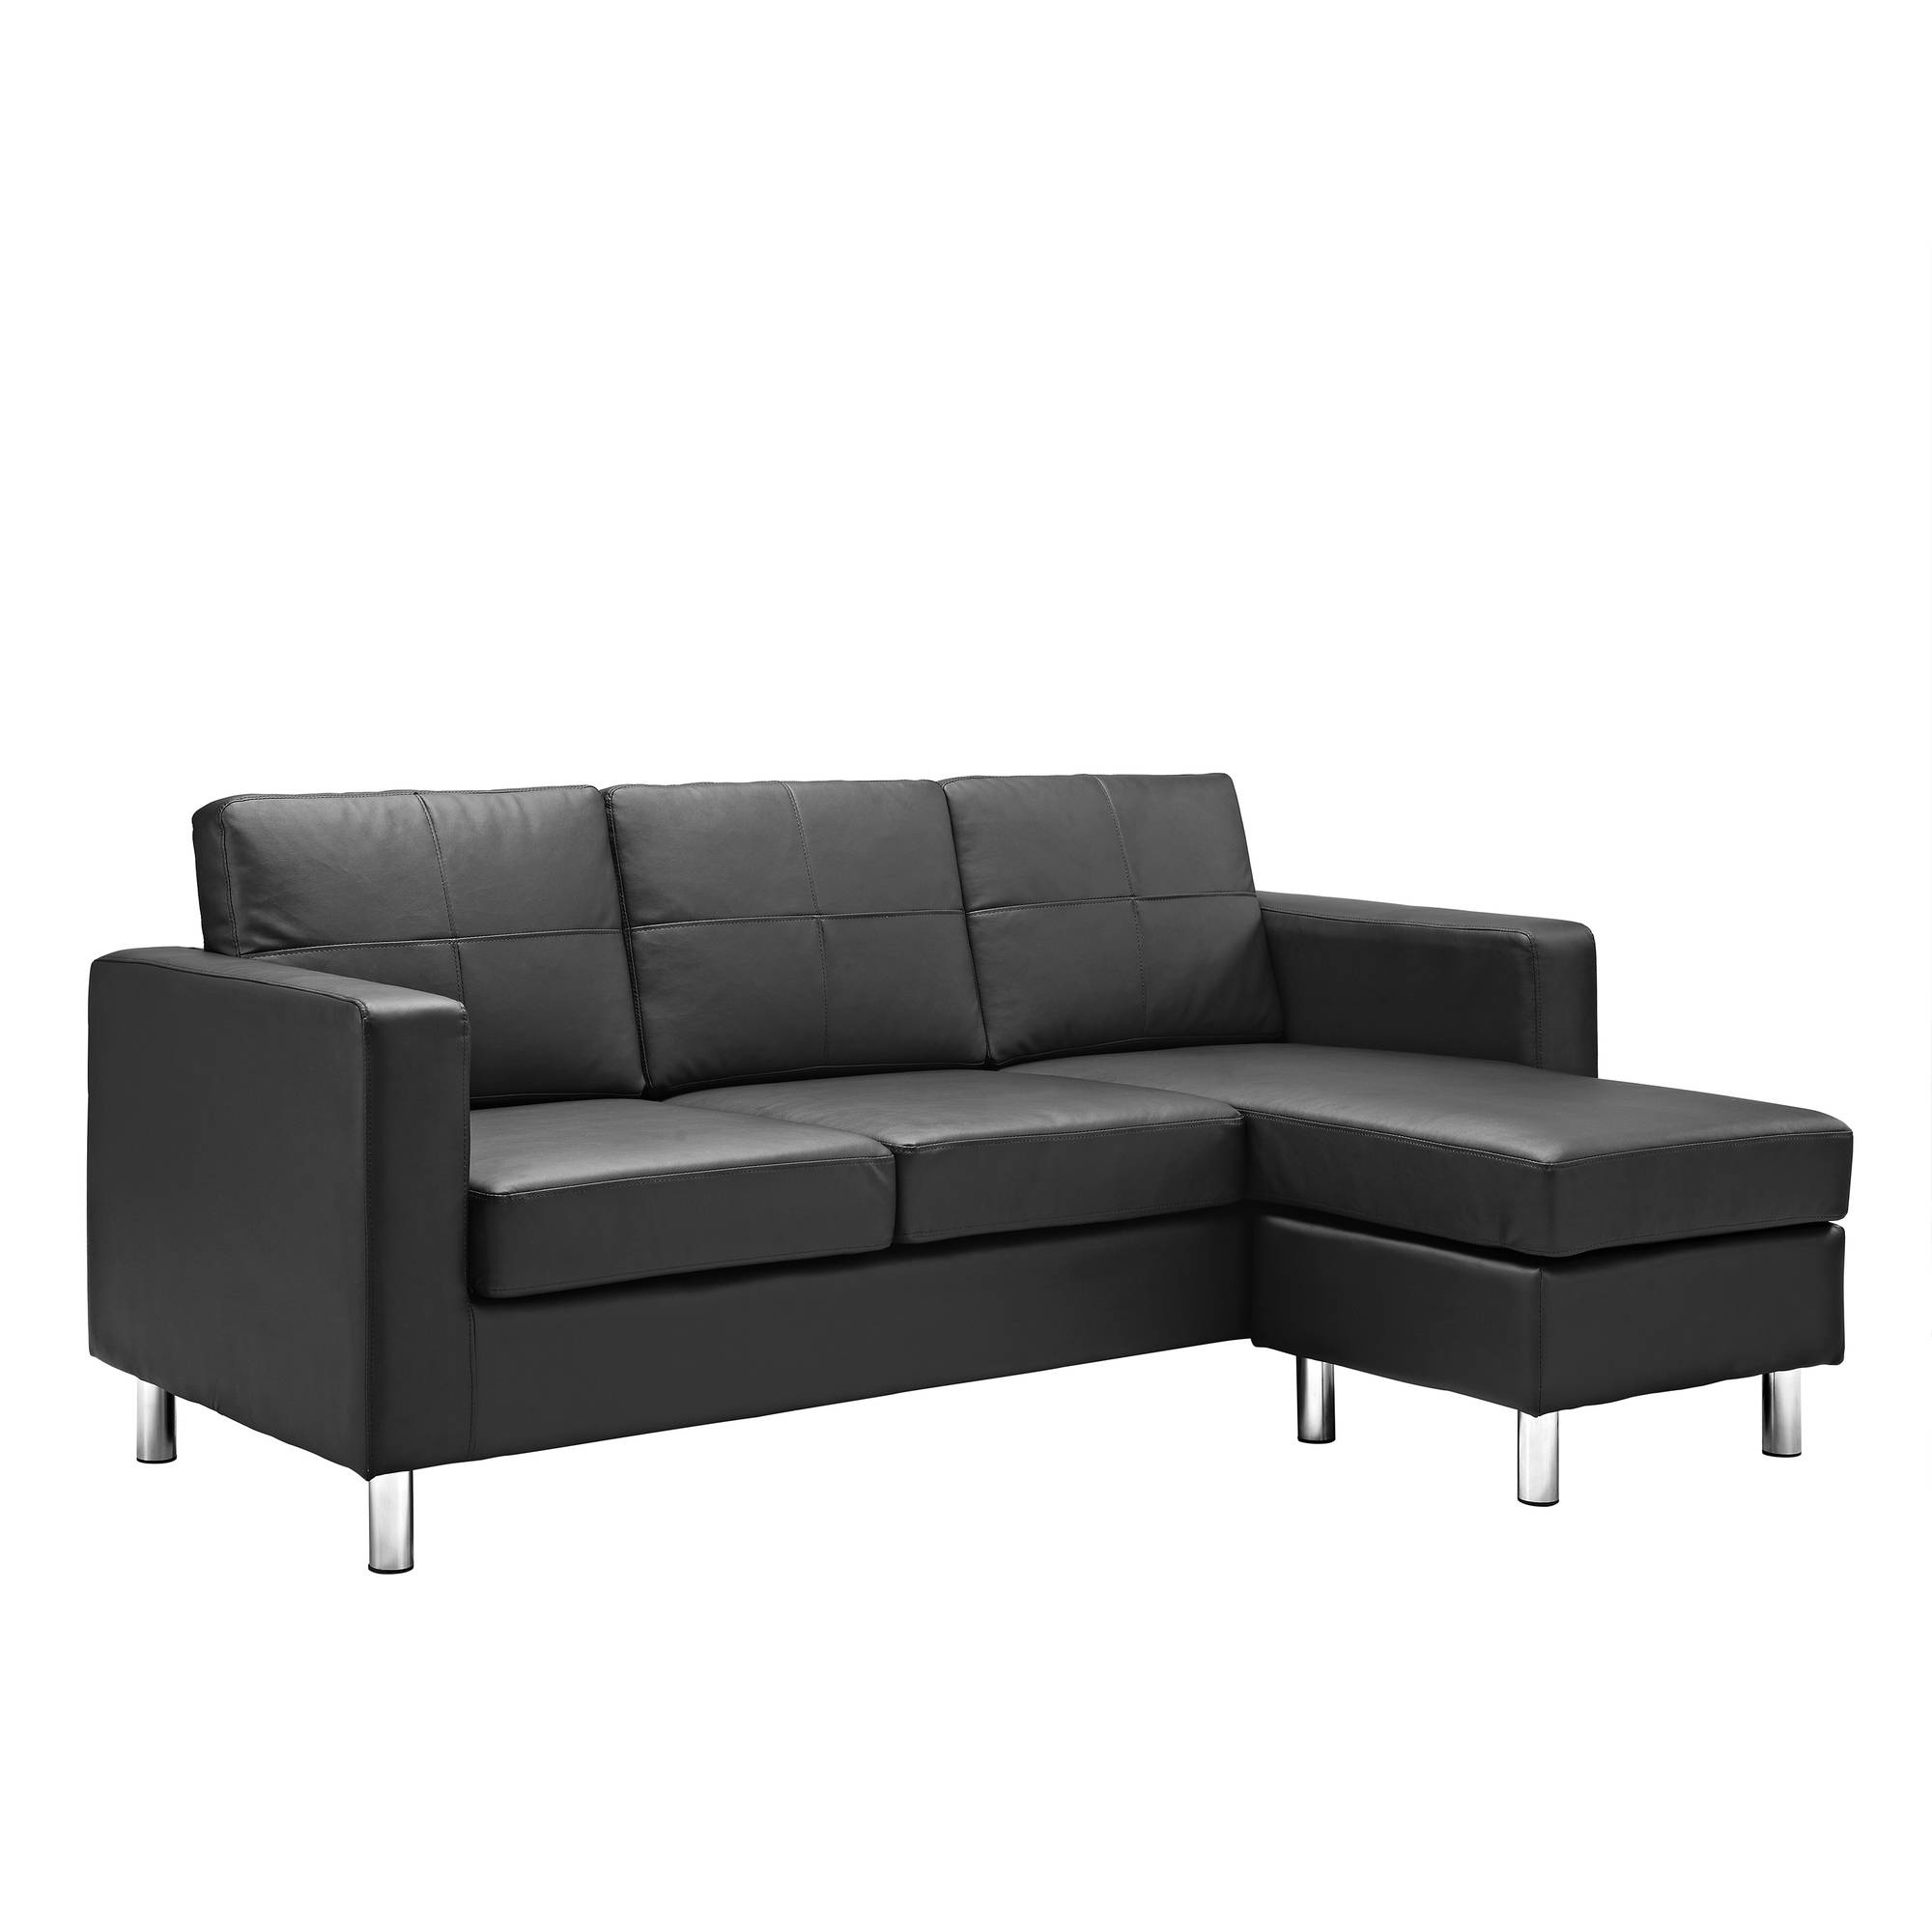 Small Spaces Configurable Sectional Sofa Black Couch